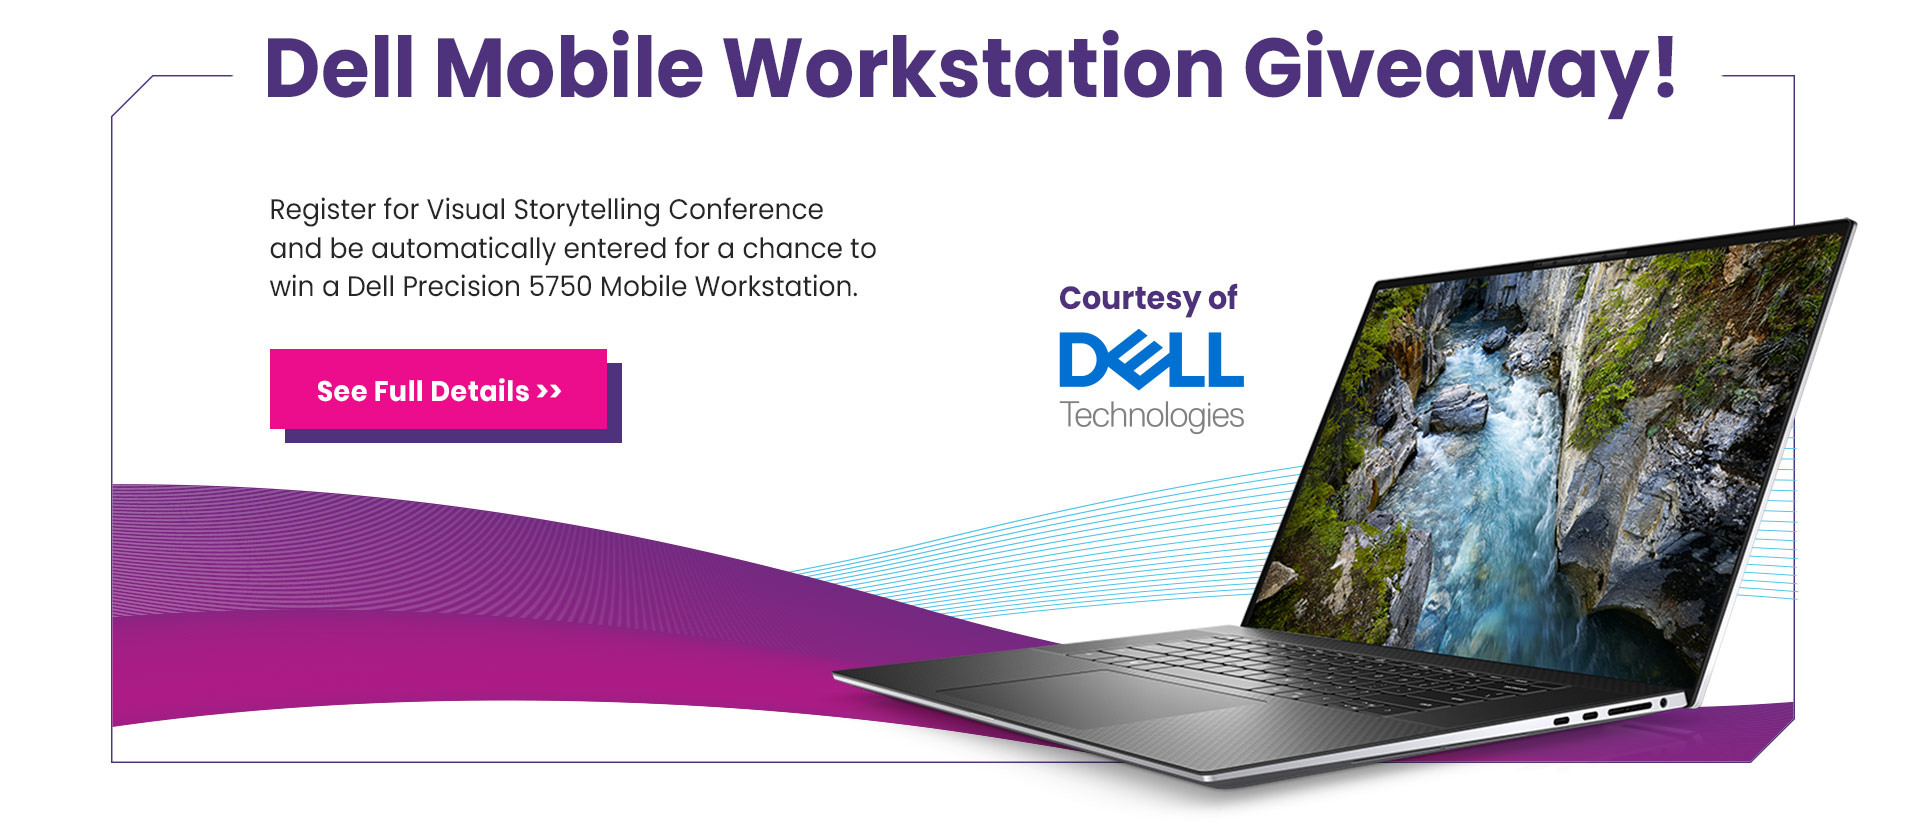 Dell Workstation Giveaway